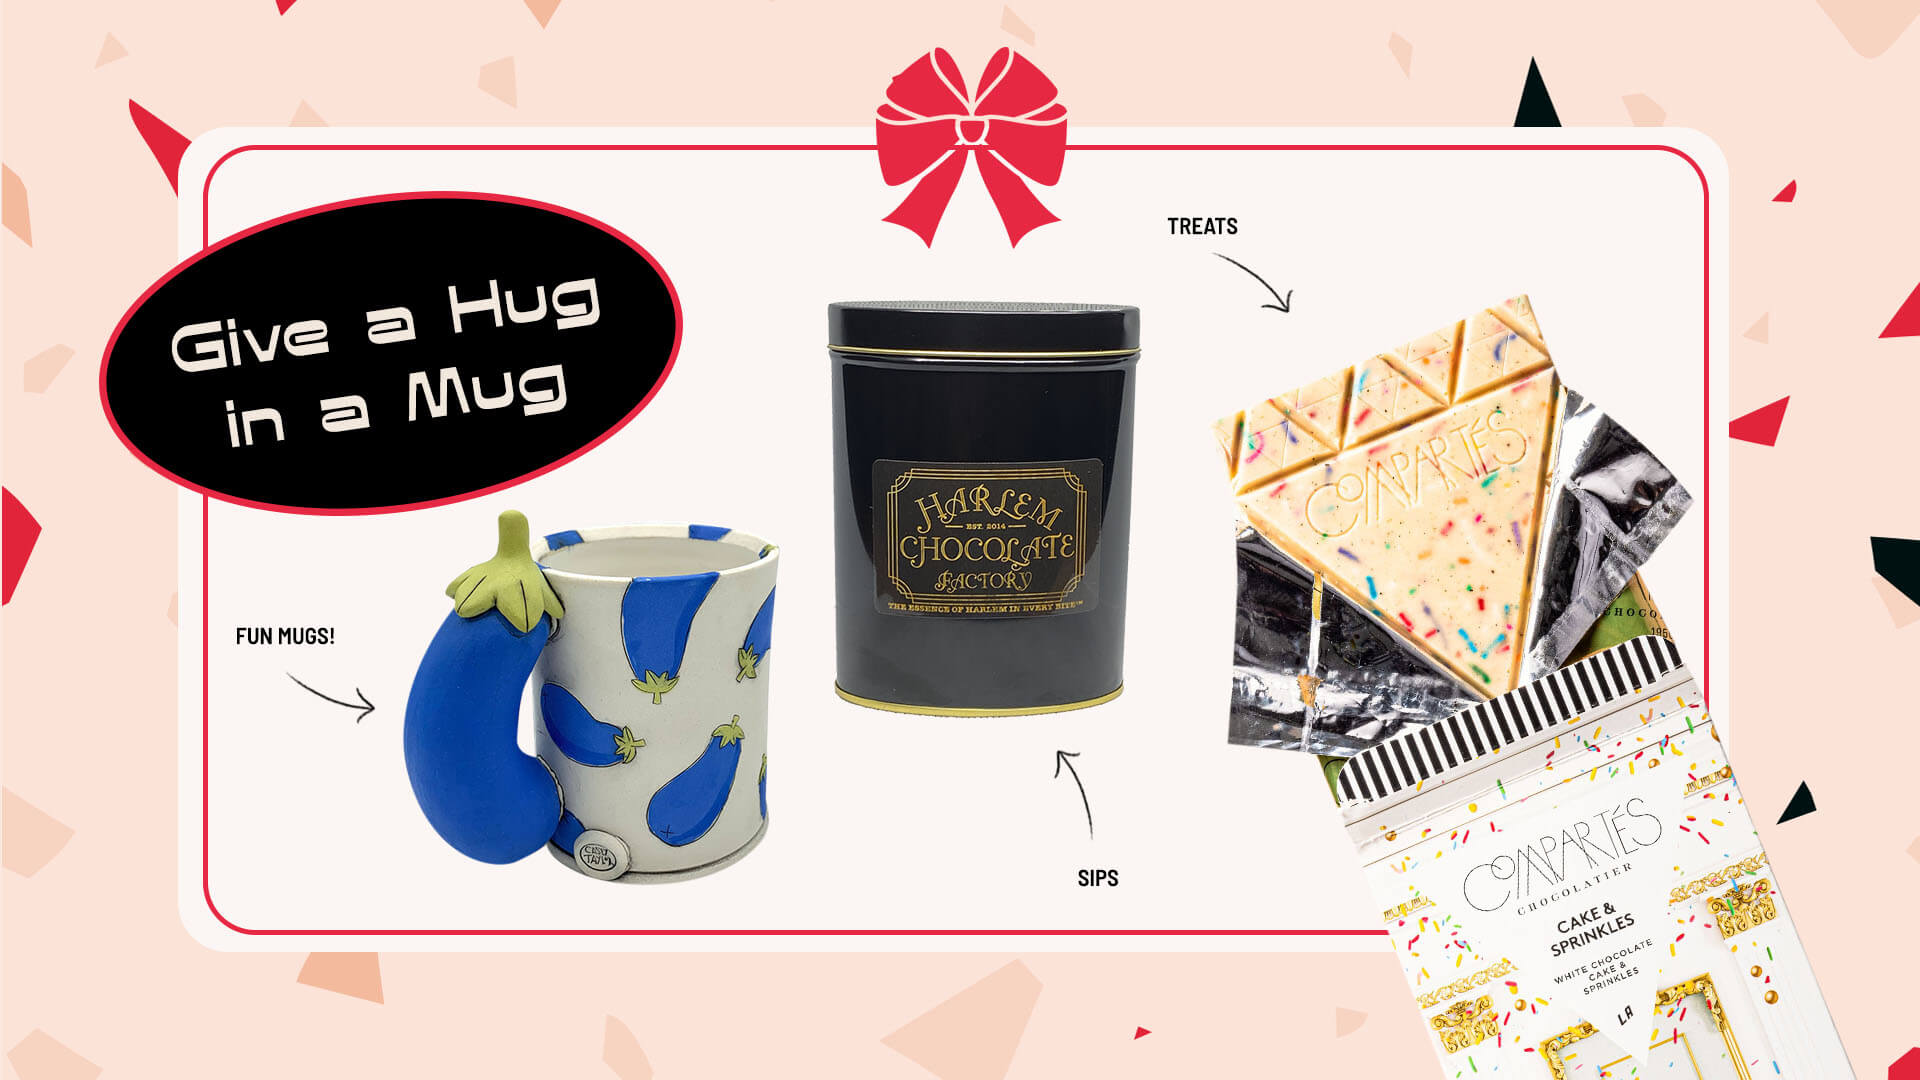 Cravings_2020GiftGuide_Horizontal07-Give-a-Hug-in-a-Mug